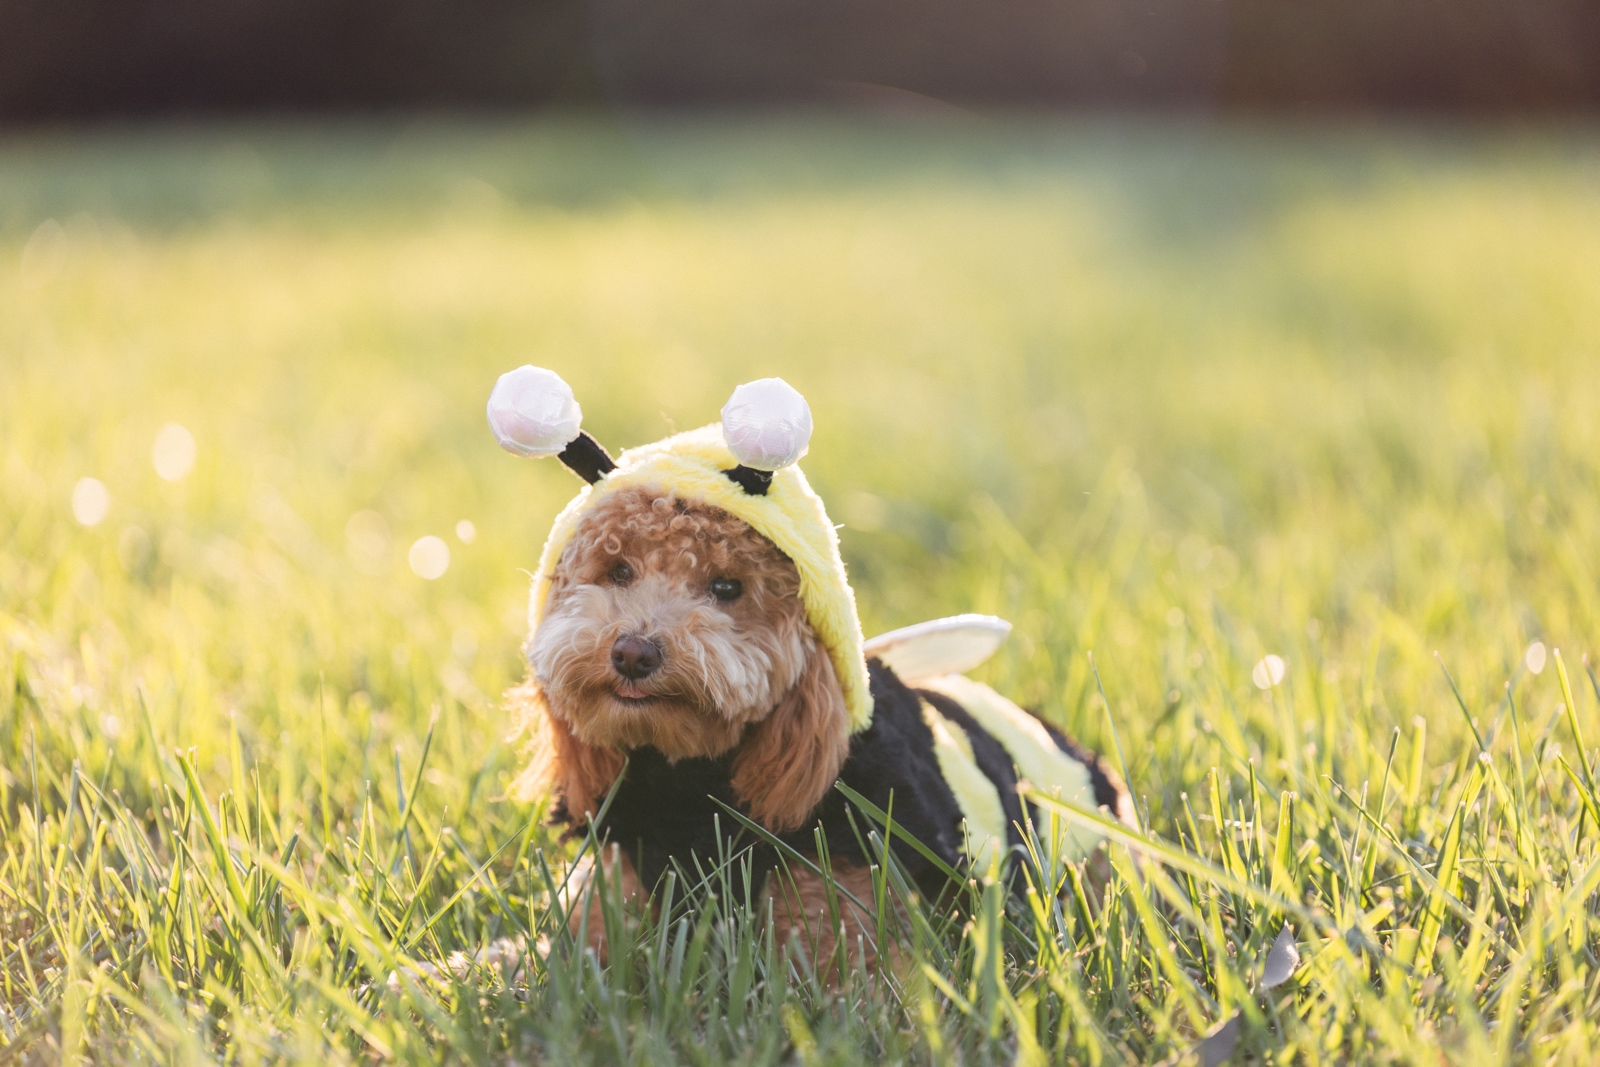 Picture of a dog in a bumble bee outfit in a field